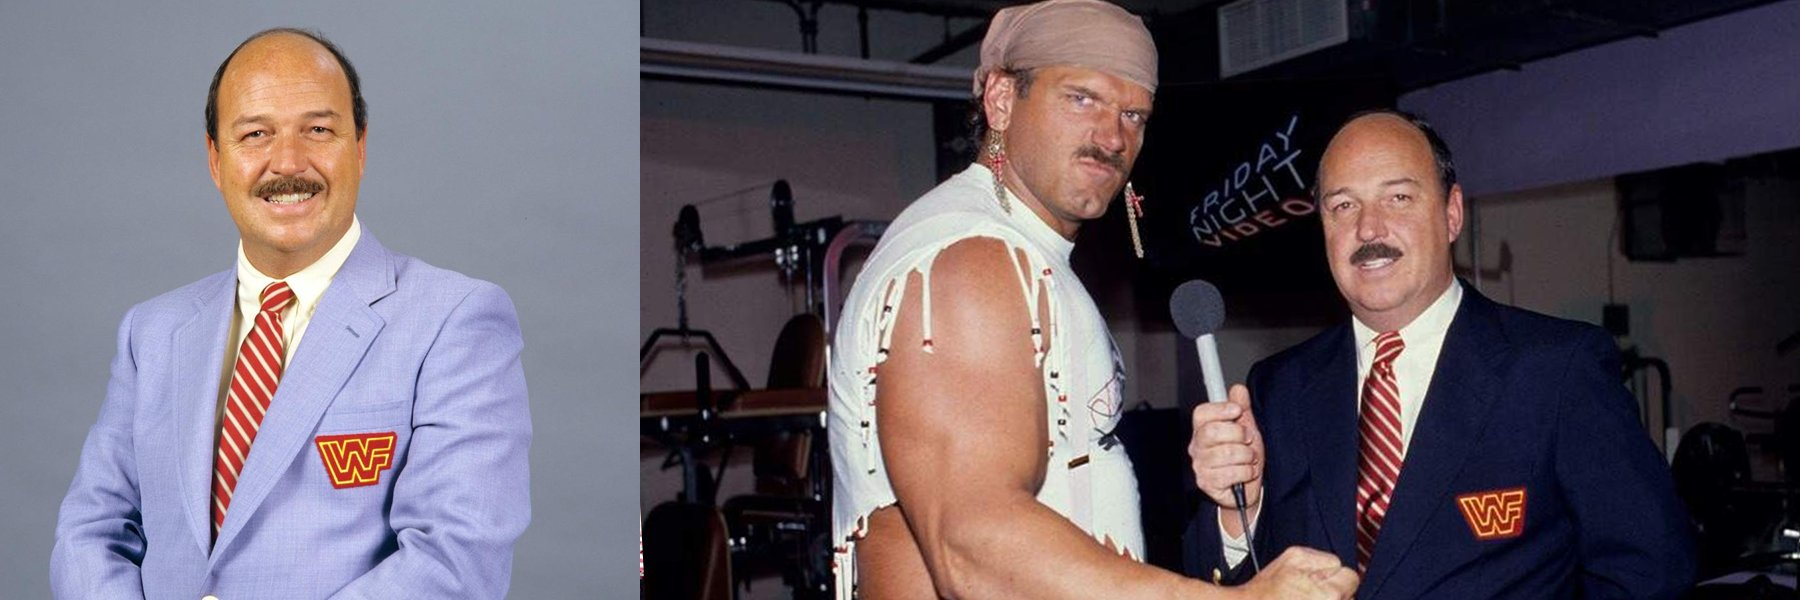 RIP Mean Gene Okerlund! Here is a rare Shoot Interview from the legend